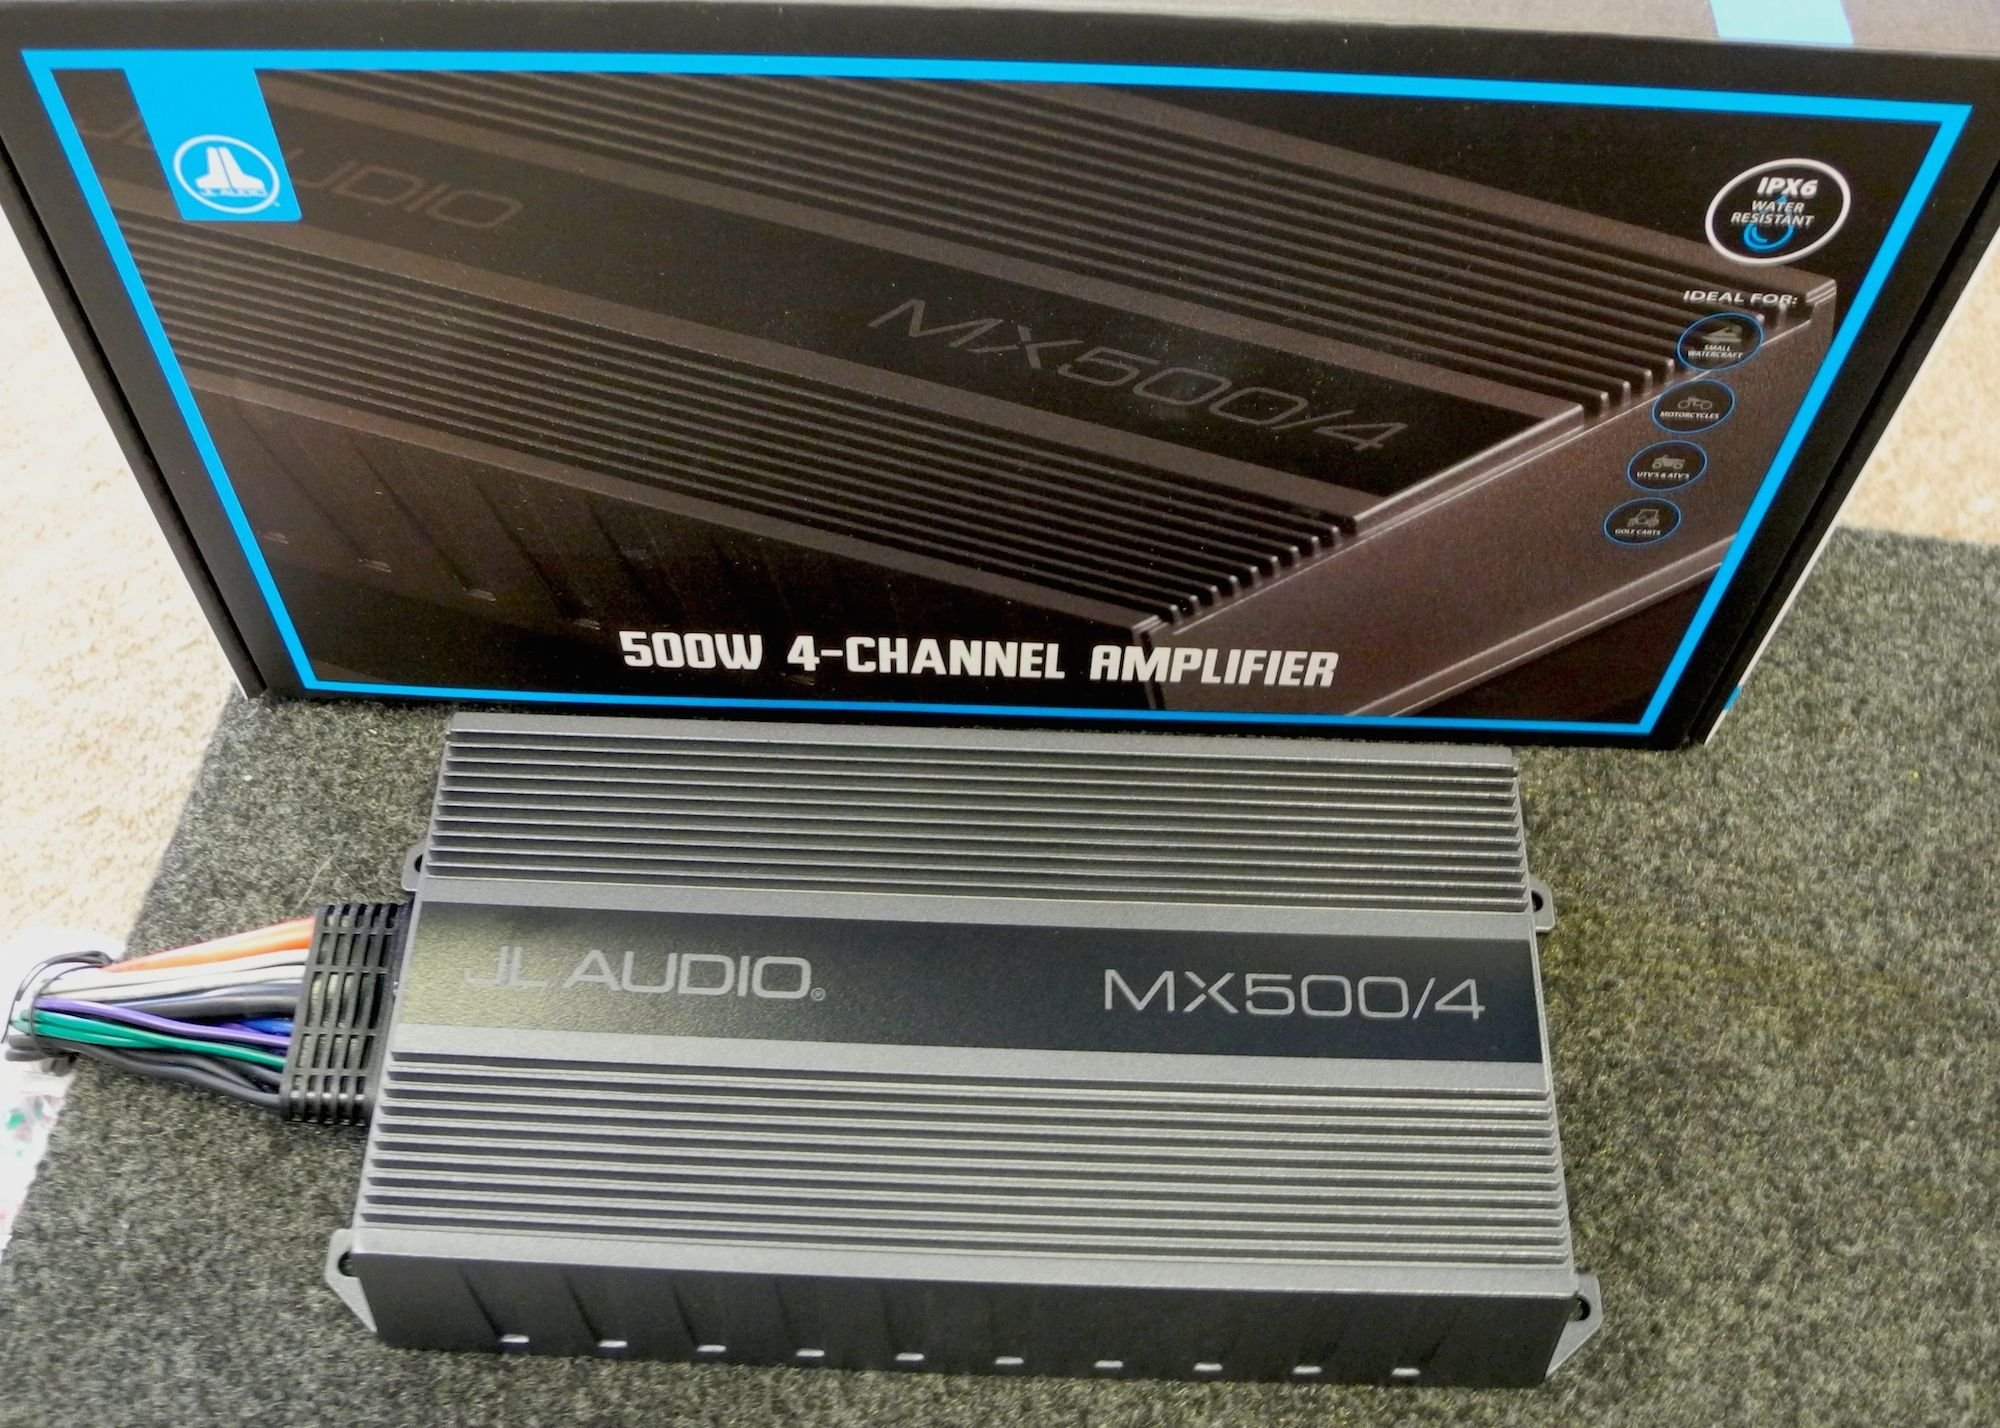 We Just Received Our First Shipment Of Jl Audio S Brand New Mx500 4 Powersport Amplifiers Ideal For Motorcycles Atvs And Other Util 4 Channel Ipx6 Amplifier